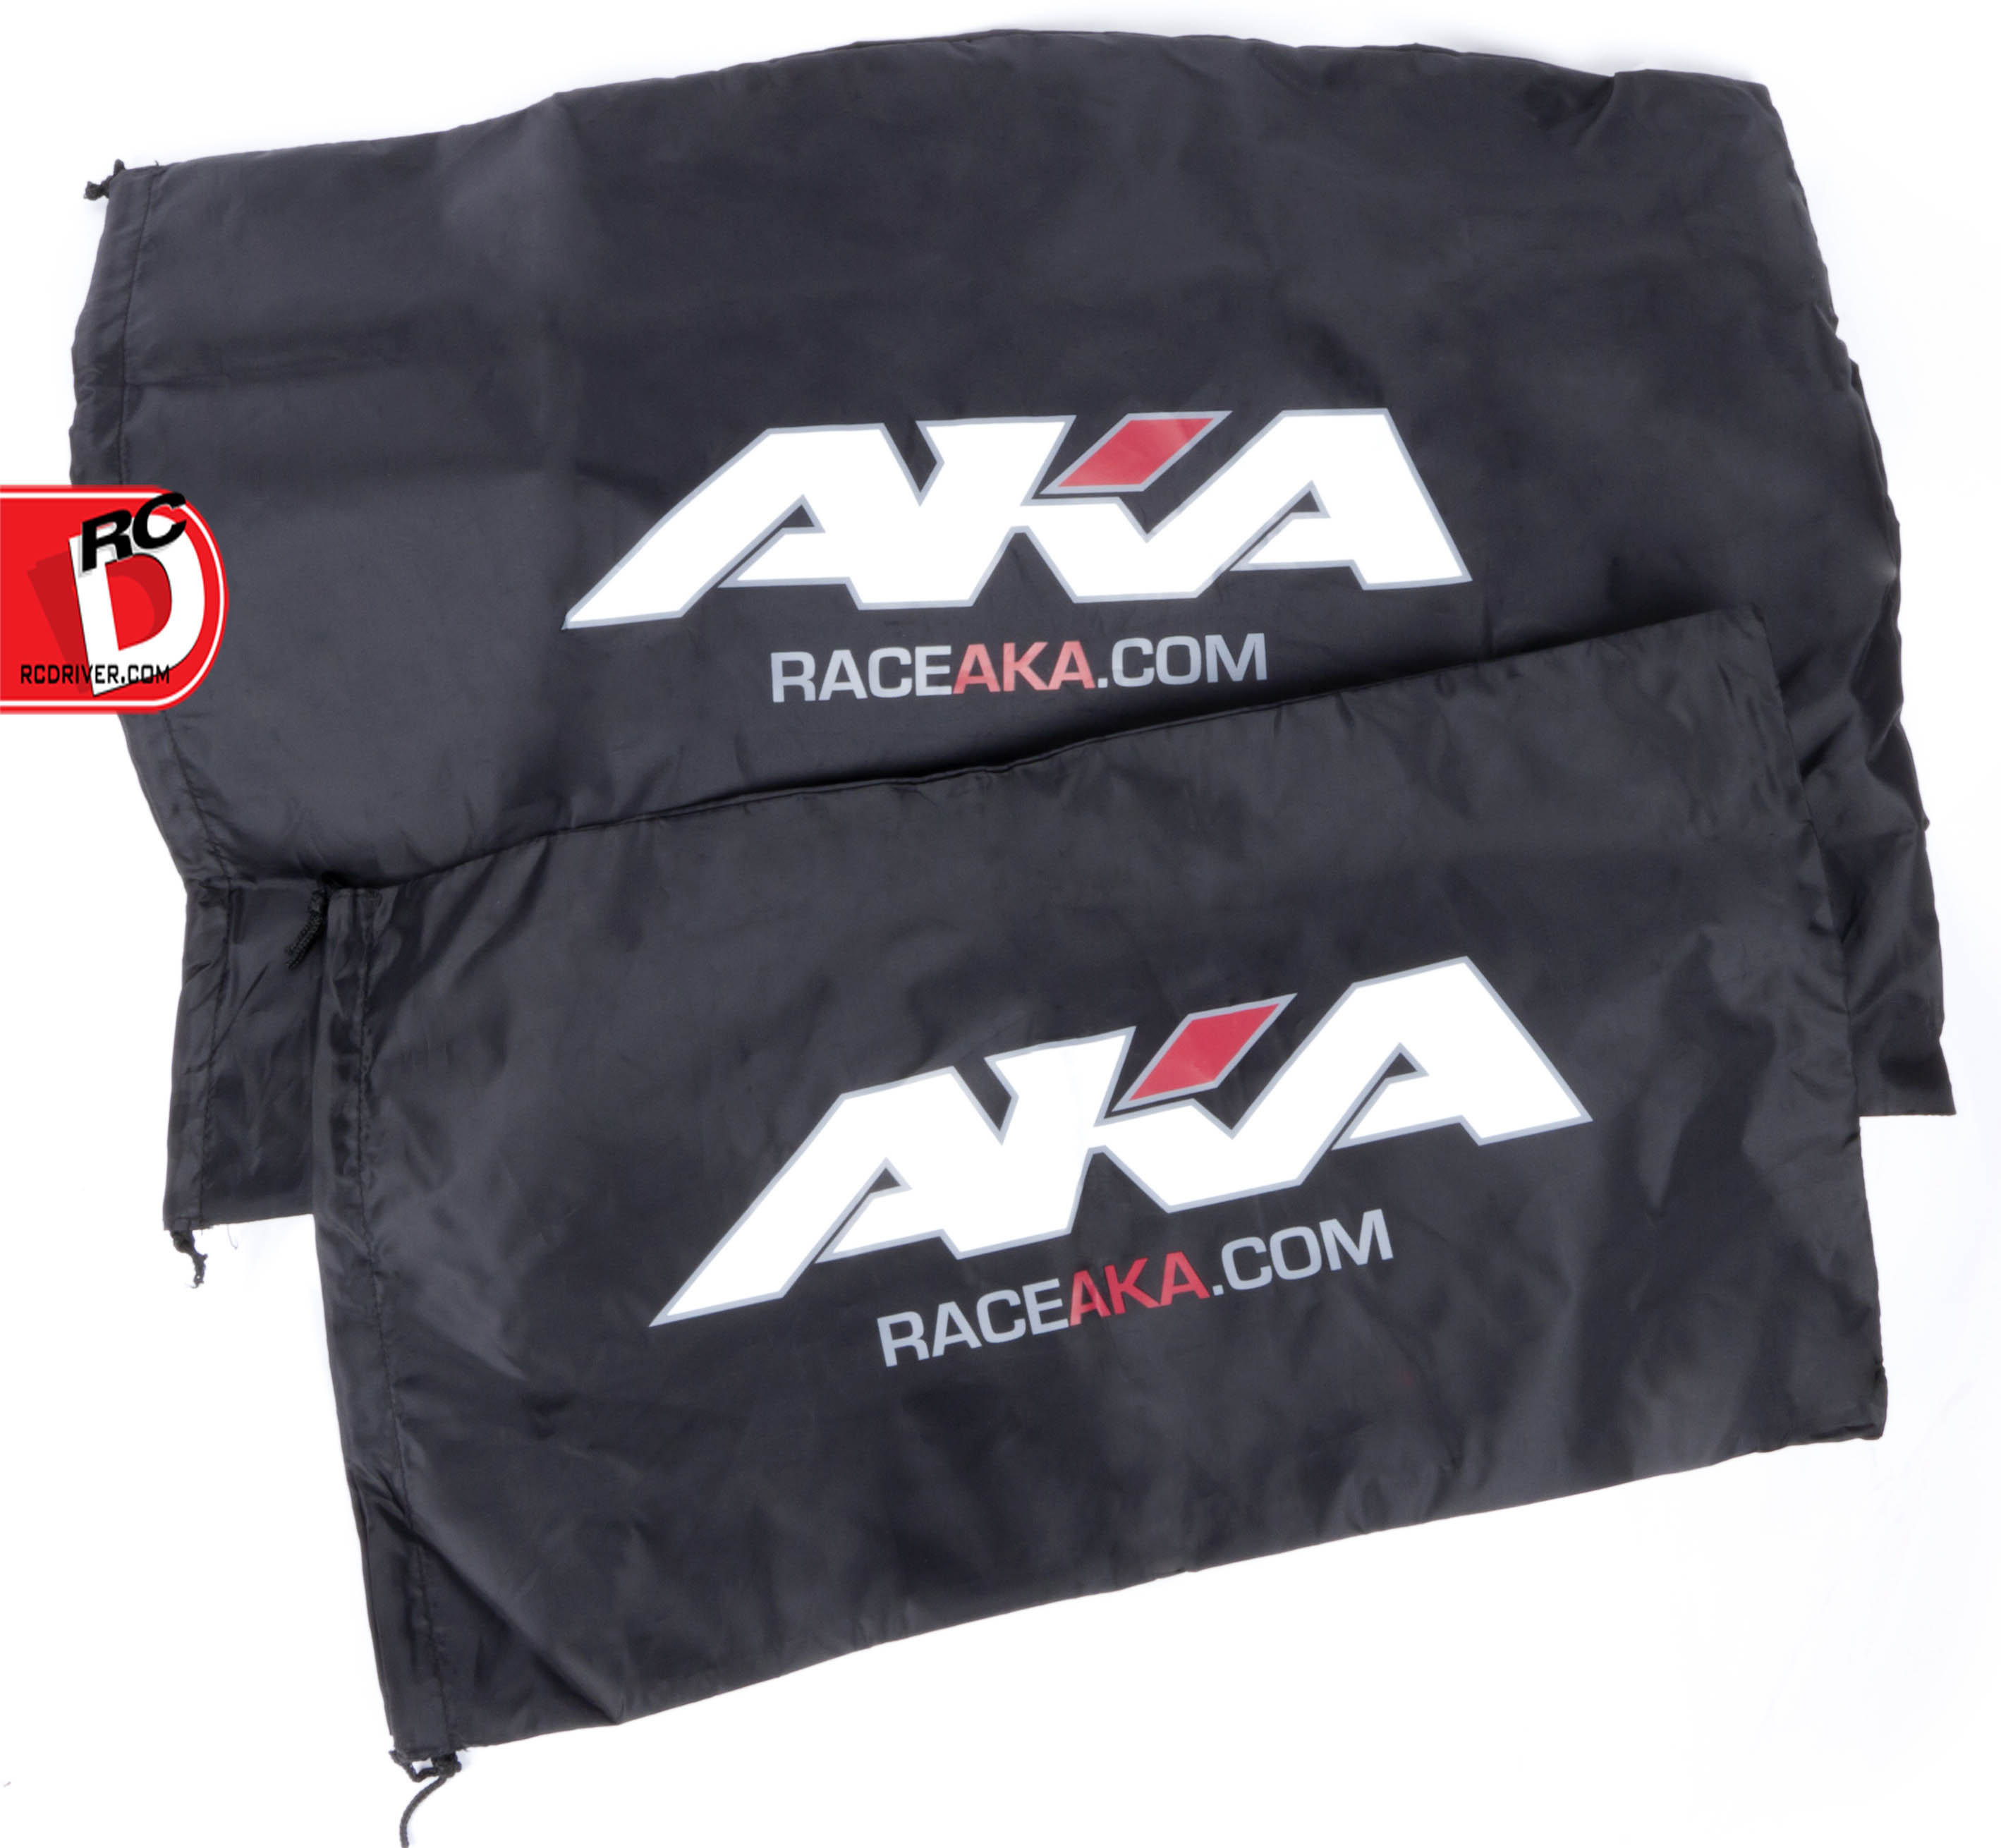 AKA - Backpack and Cinch Sacks copy